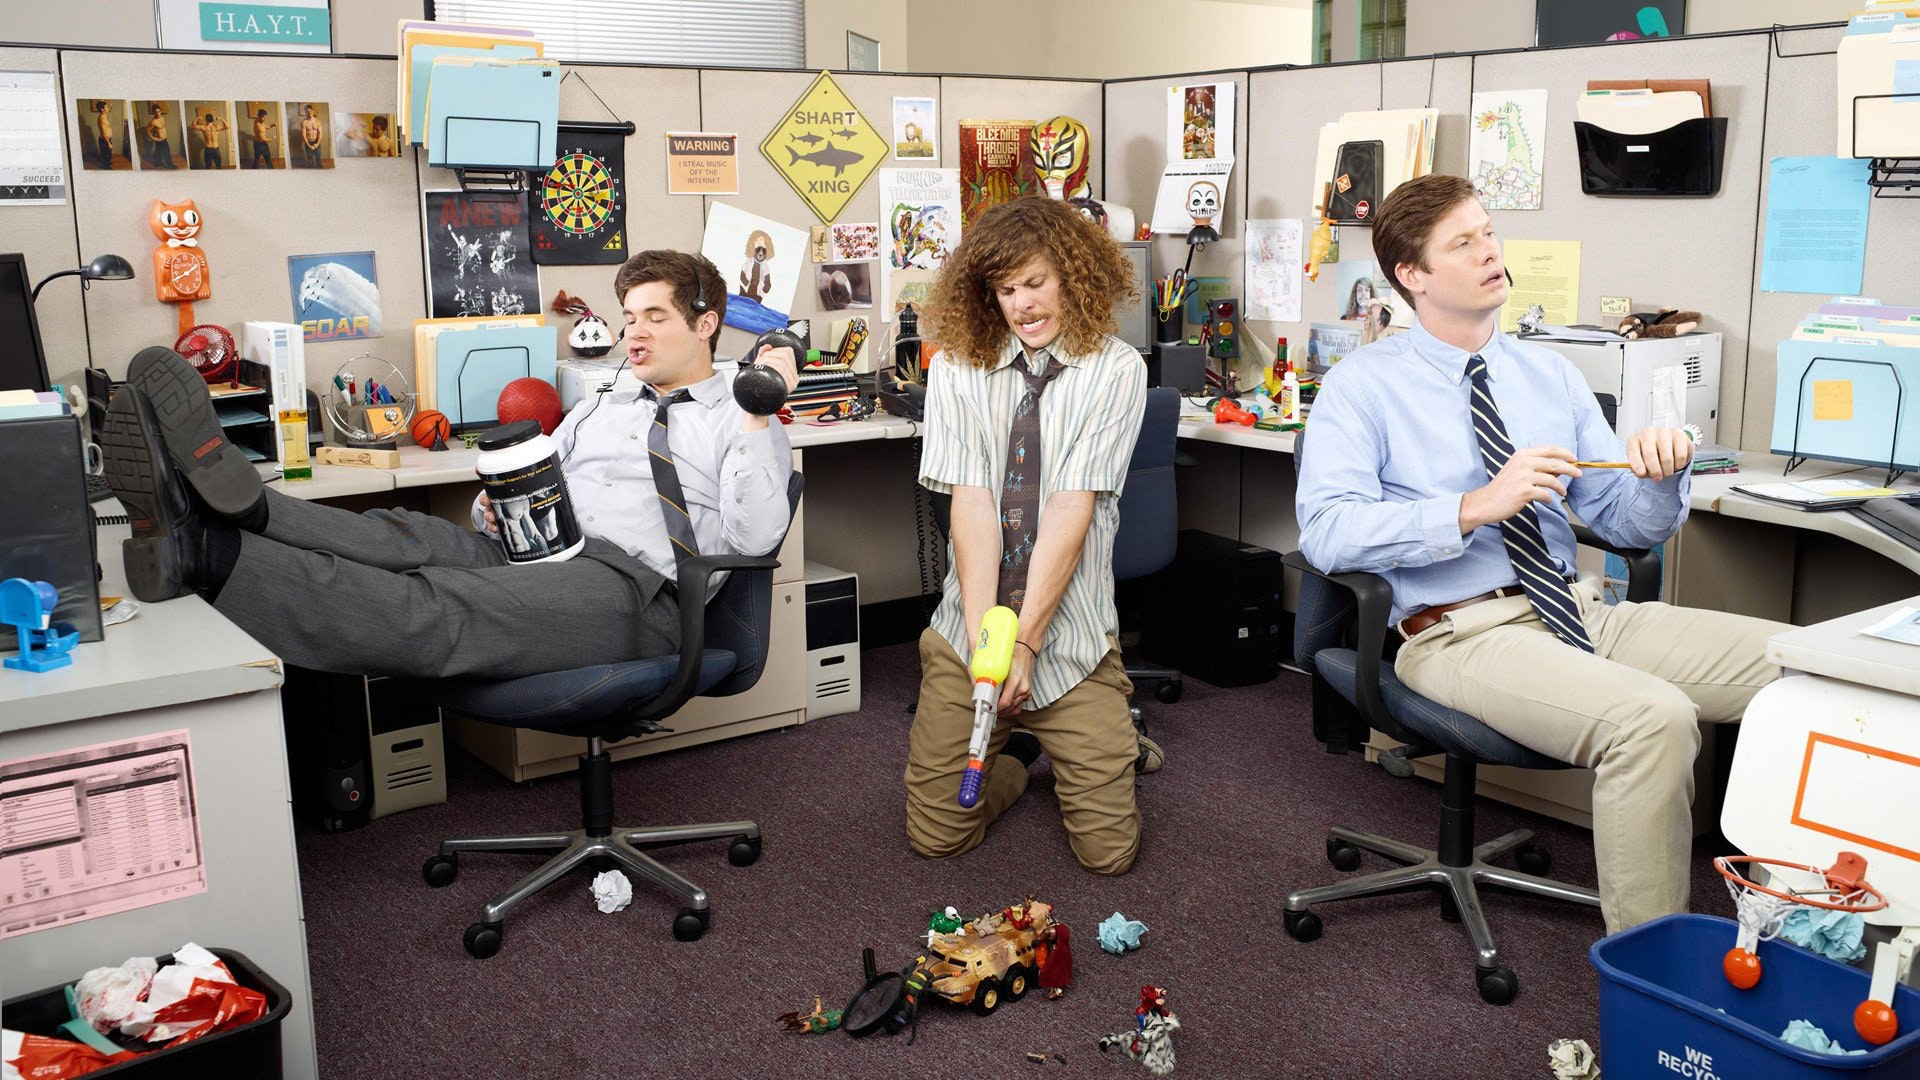 Workaholics Soundtrack